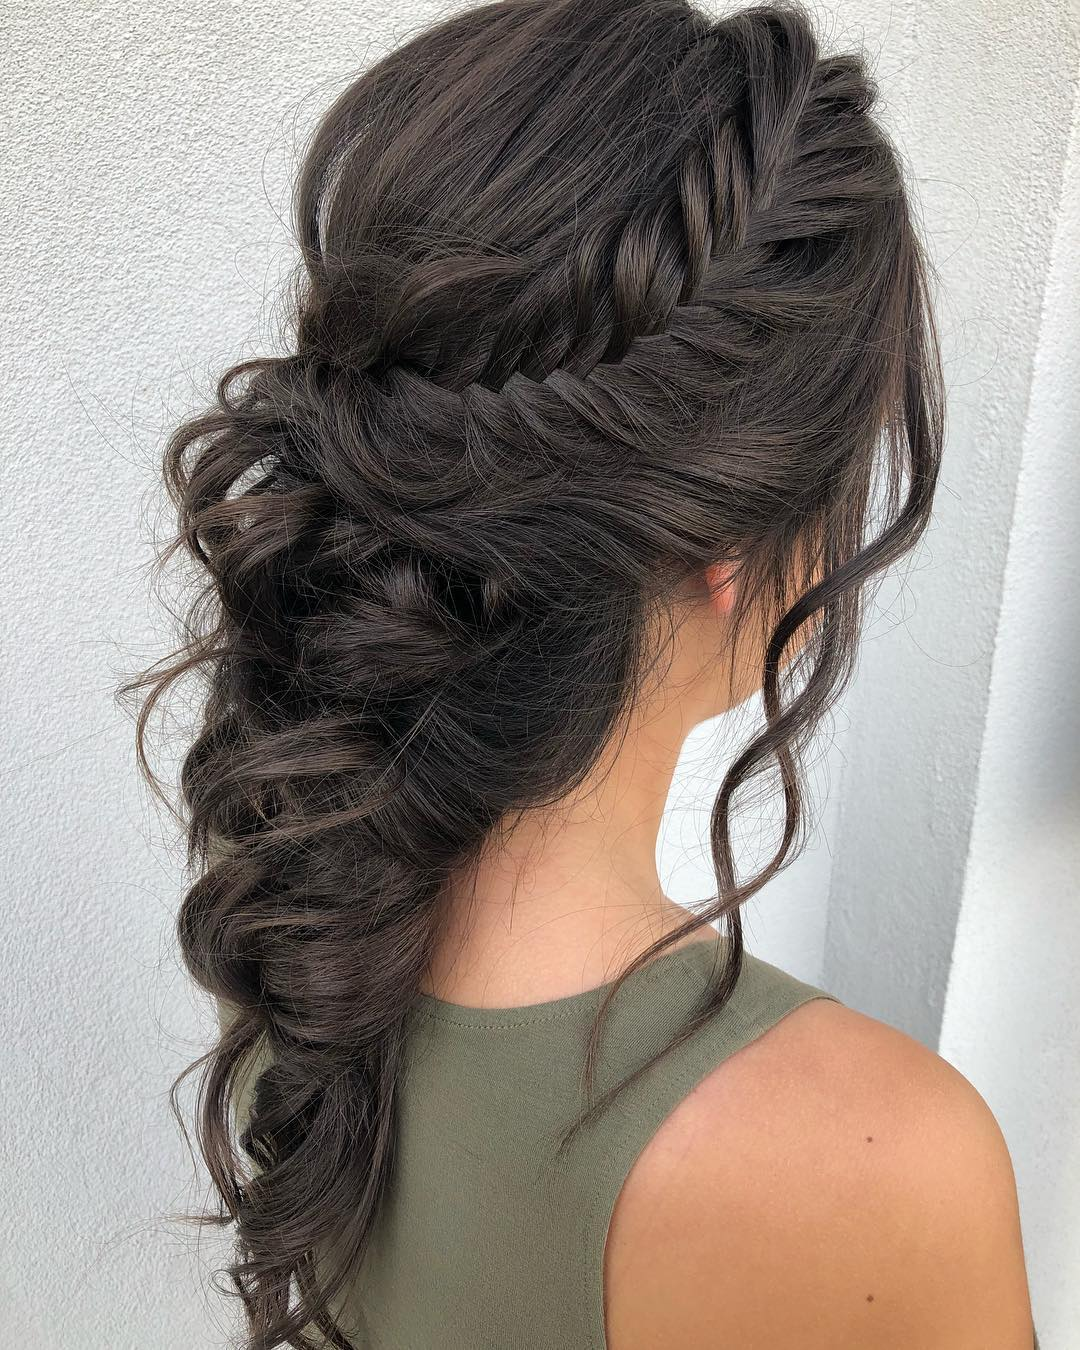 Wedding Hairstyle Trends 2019: 9 Wedding Hair Trends For 2019